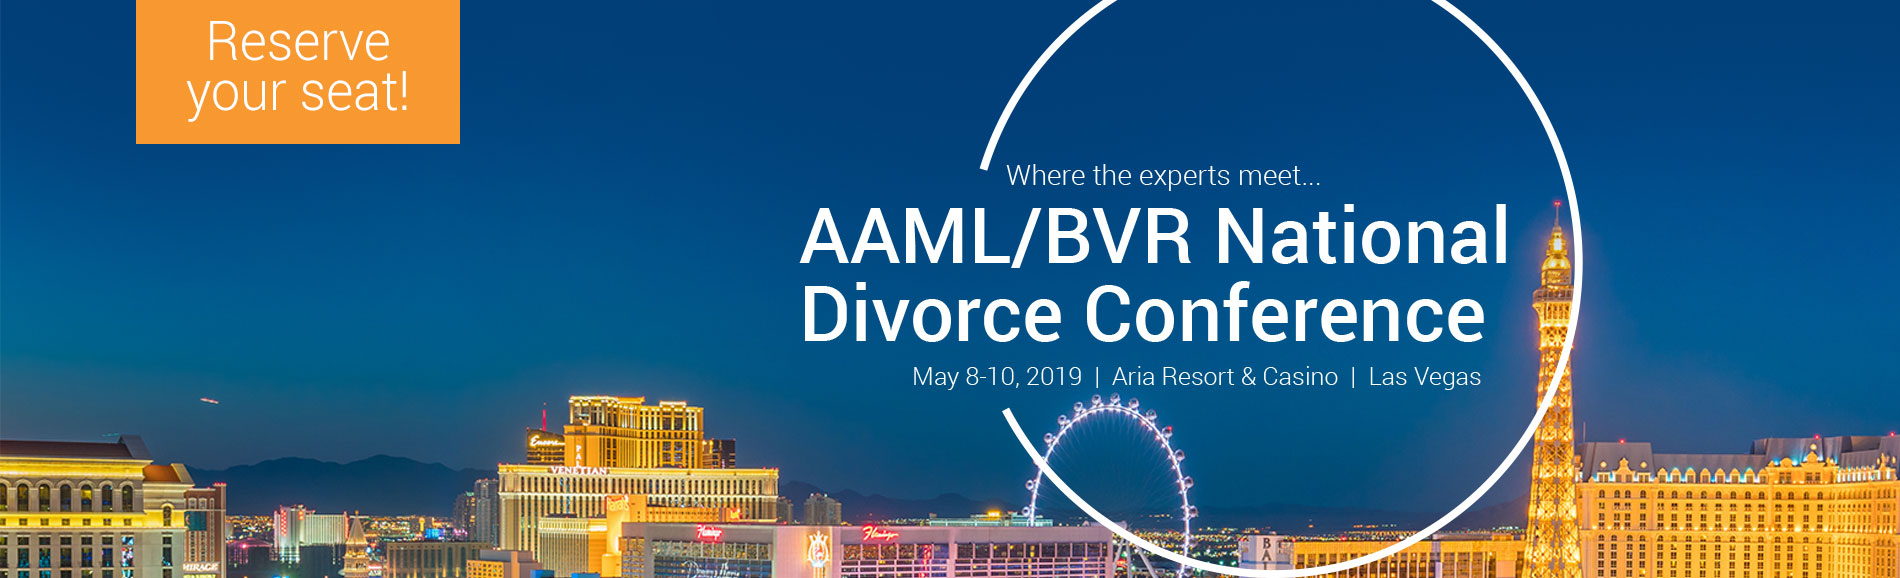 National Divorce Conference 2019